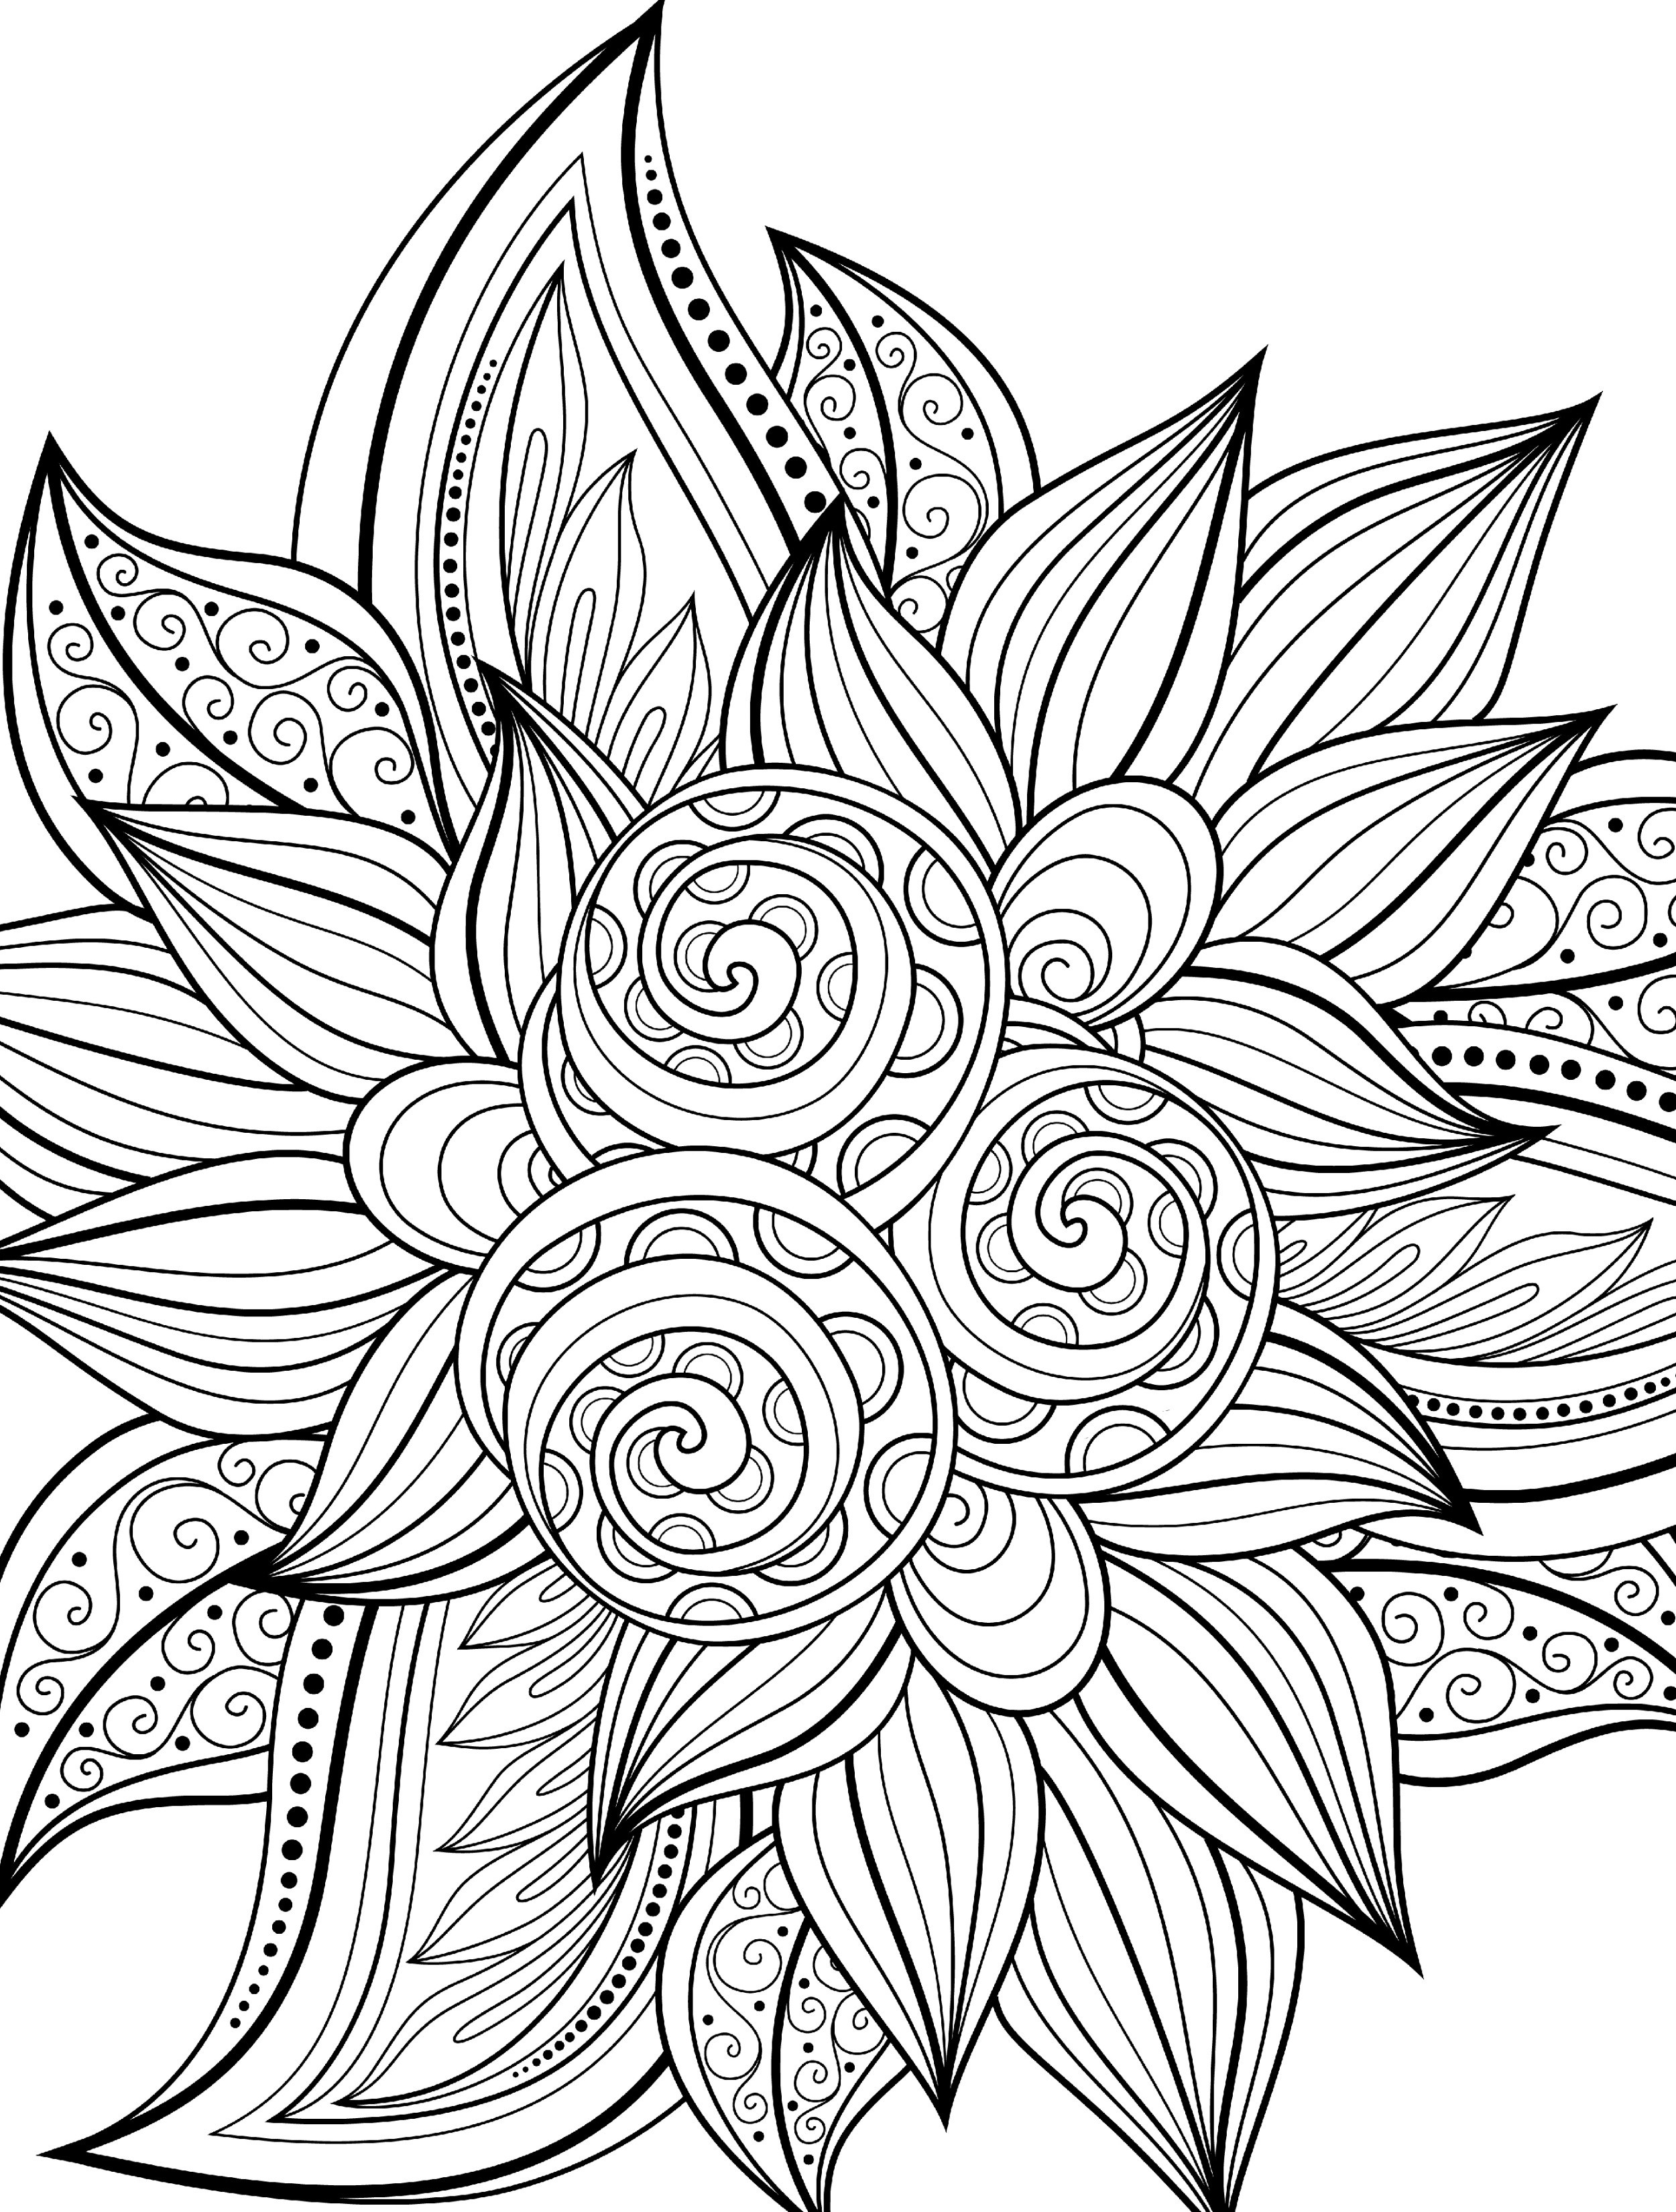 Free Printable Coloring Pages Adults Only 39 Free Printable Coloring Pages Adults Only Difficult Hard